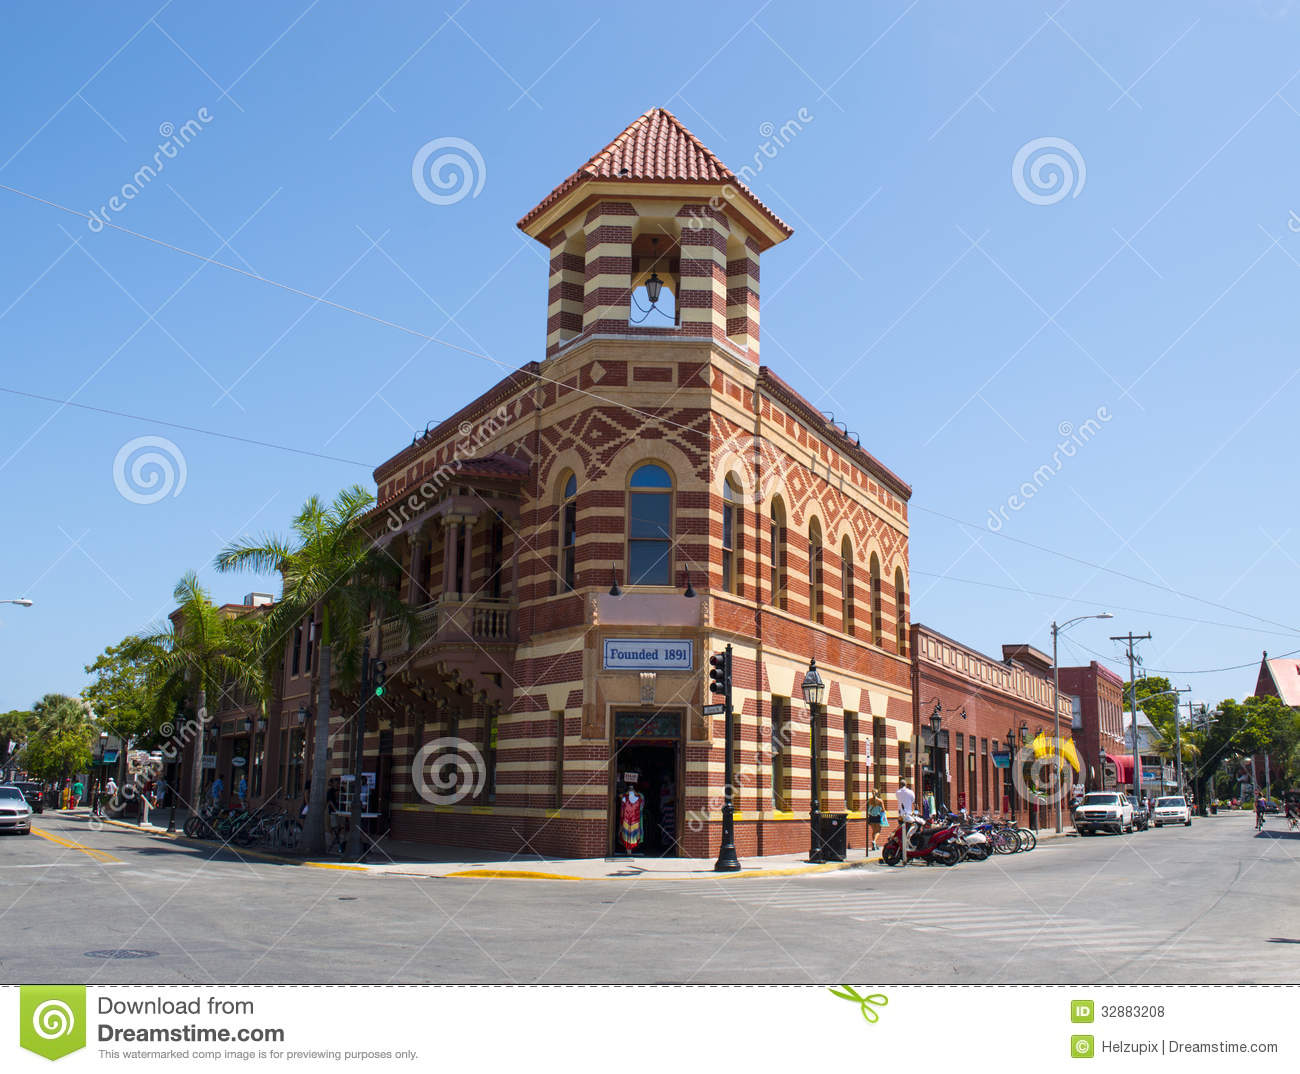 Royalty Free Stock Photos Historic Brick Building Historical Former Bank Street View Key West Florida Image32883208 on Key West House Designs